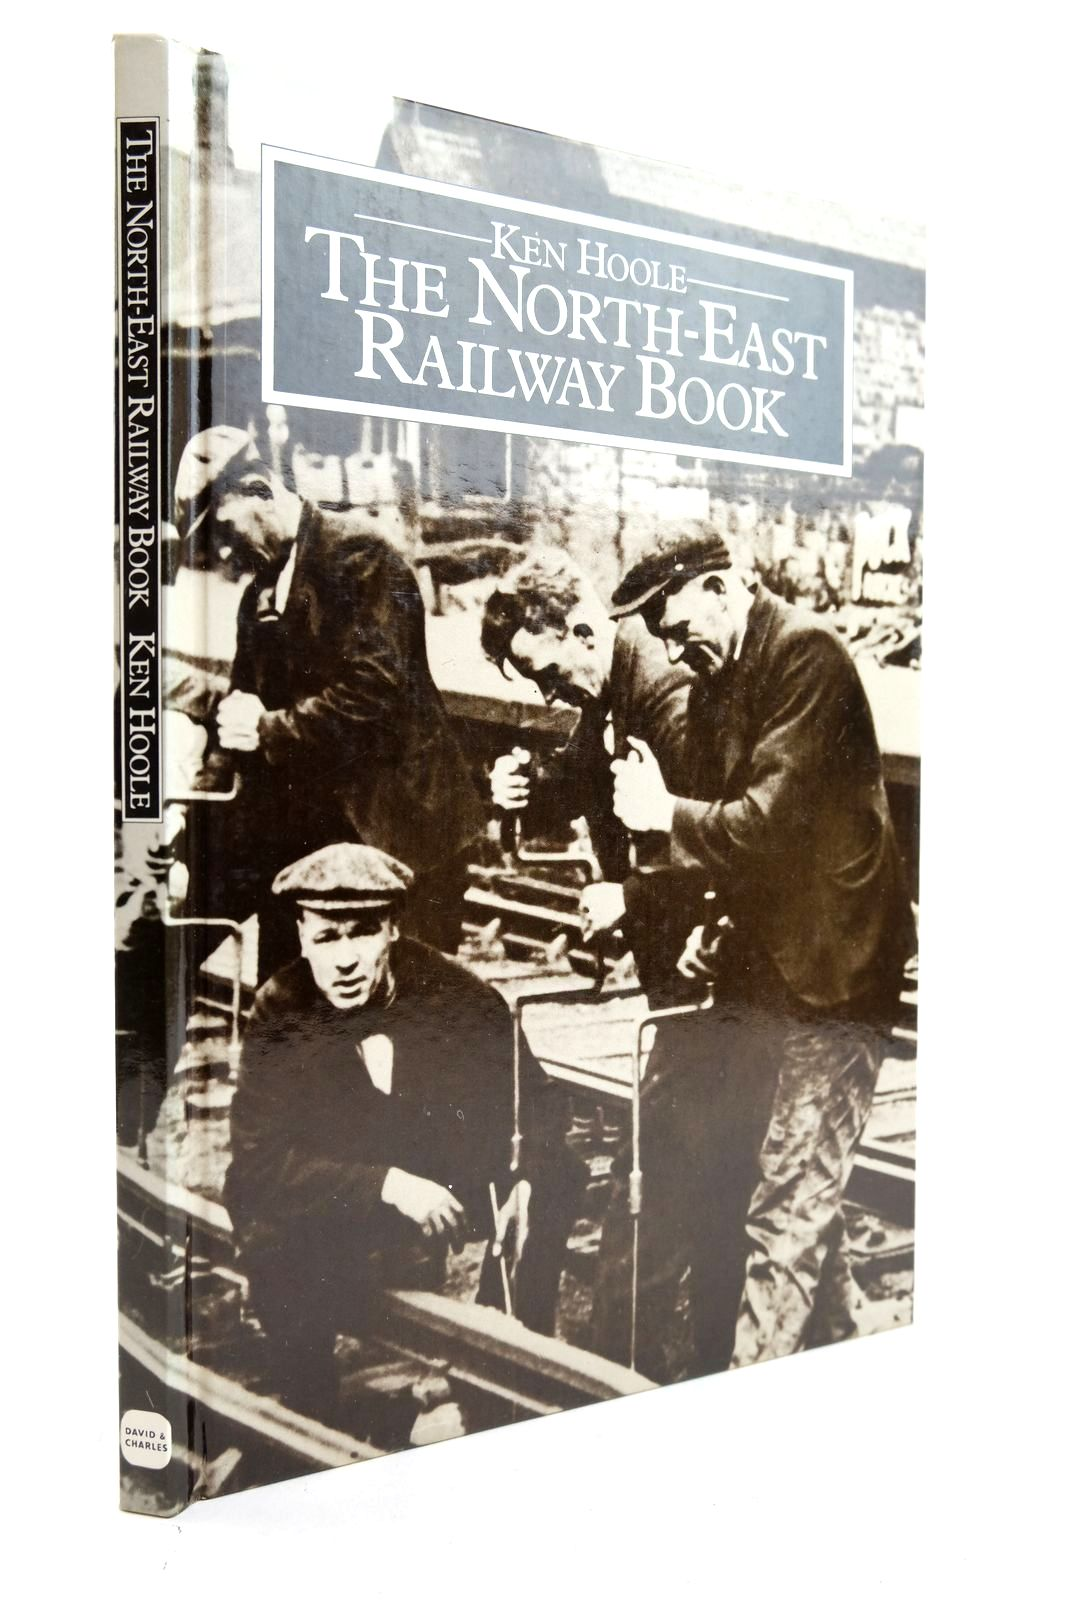 Photo of THE NORTH EAST RAILWAY BOOK- Stock Number: 2133105